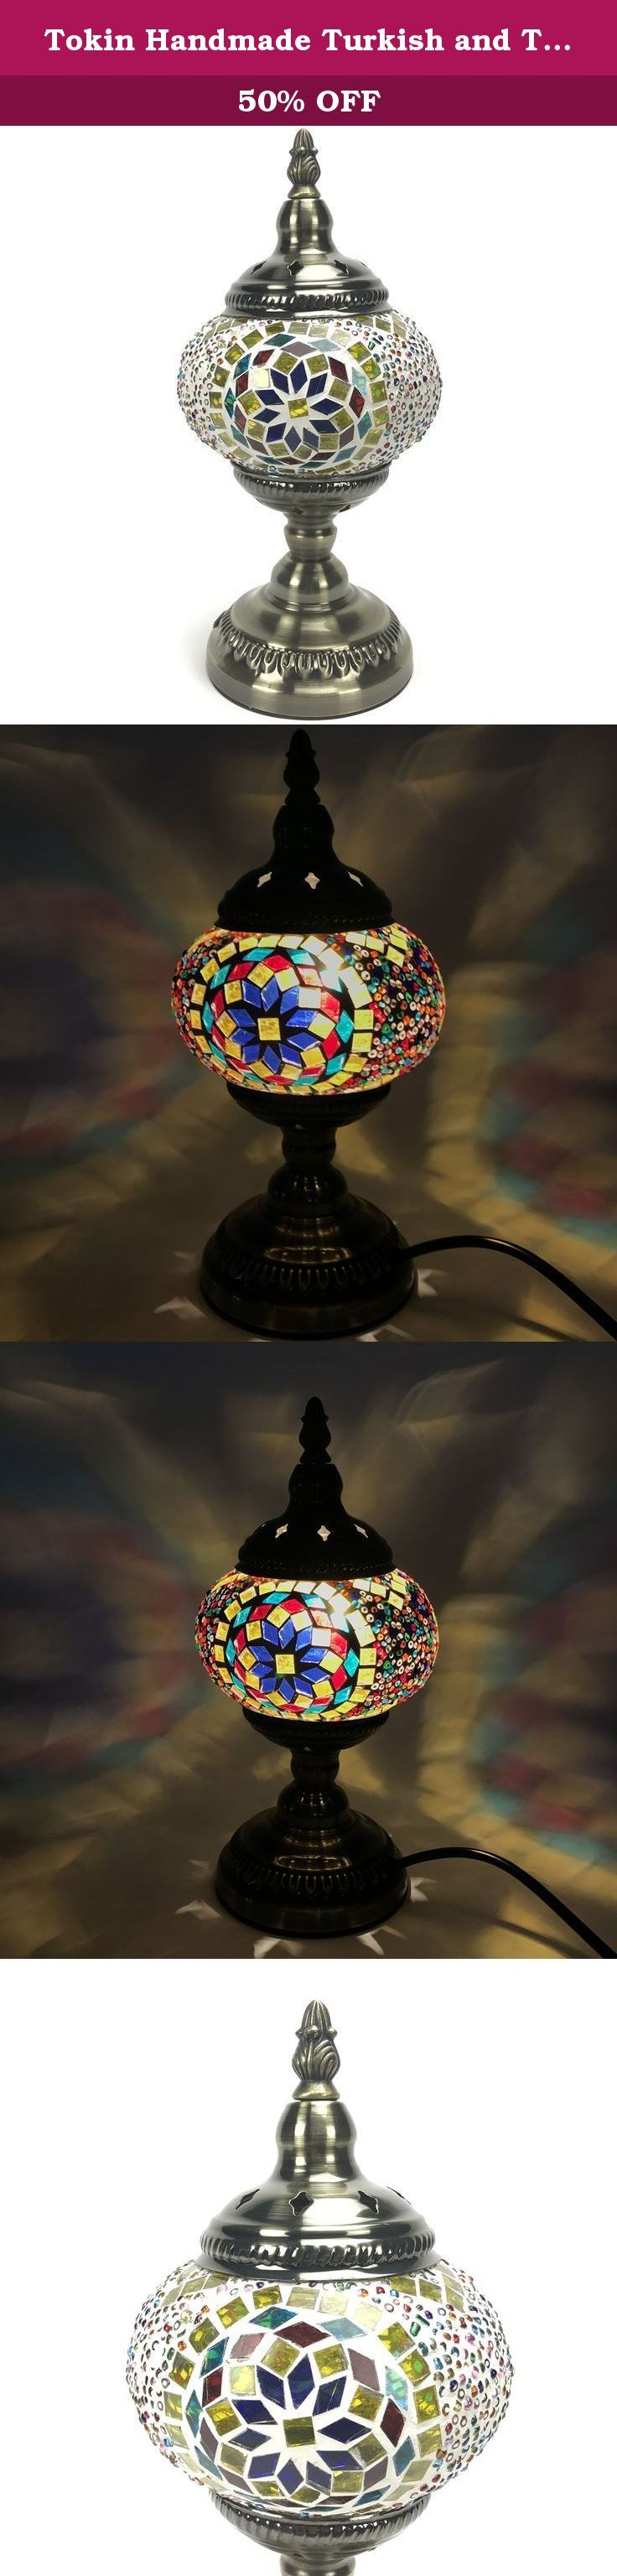 Tokin Handmade Turkish and Tiffany - Style Mosaic Glass Table Lamb Beside Desk Light with Bronze Metal Base - Multi-Color Light. Important Safety Tips and Instructions: · For safety purposes, this lamp is equipped with a safe plug. If the plug does not fit securely into your outlet, do not force it, contact a professional electrician. Use the plug with an extension cord only if it can be fully inserted into the cord's socket. Never alter the plug in any way. · This instruction is provided...